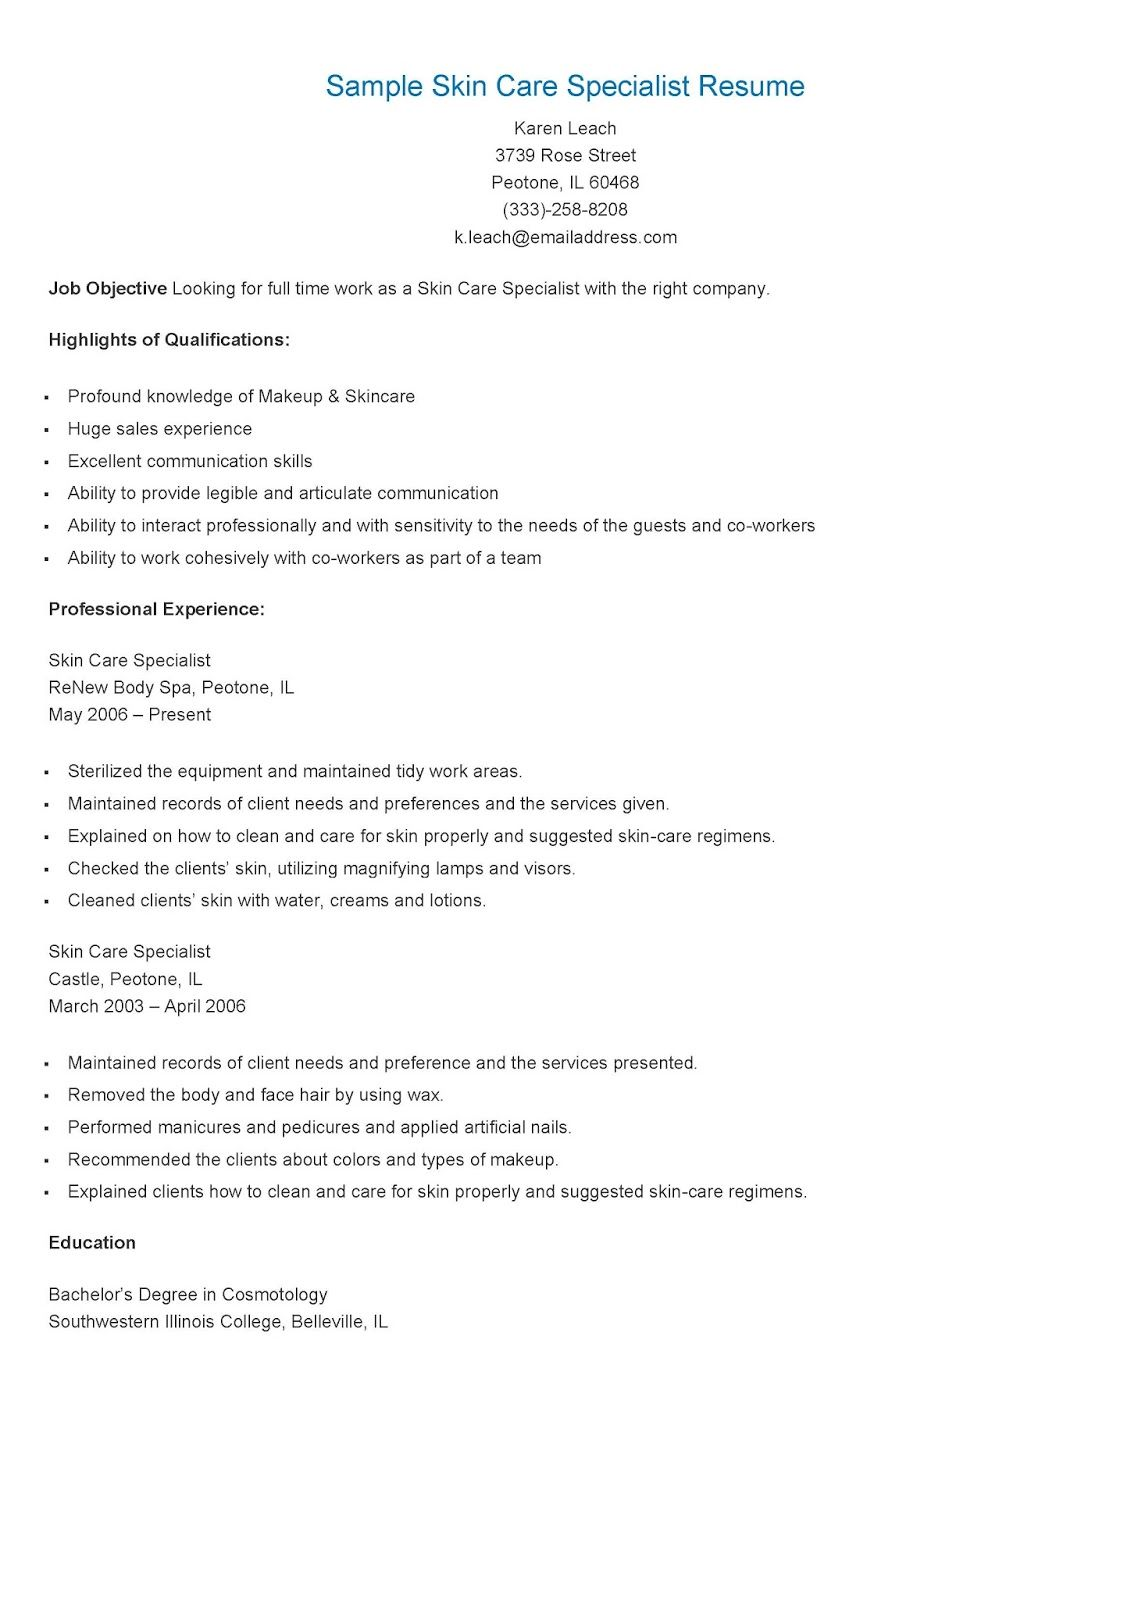 Sample Skin Care Specialist Resume  Resame    Skin